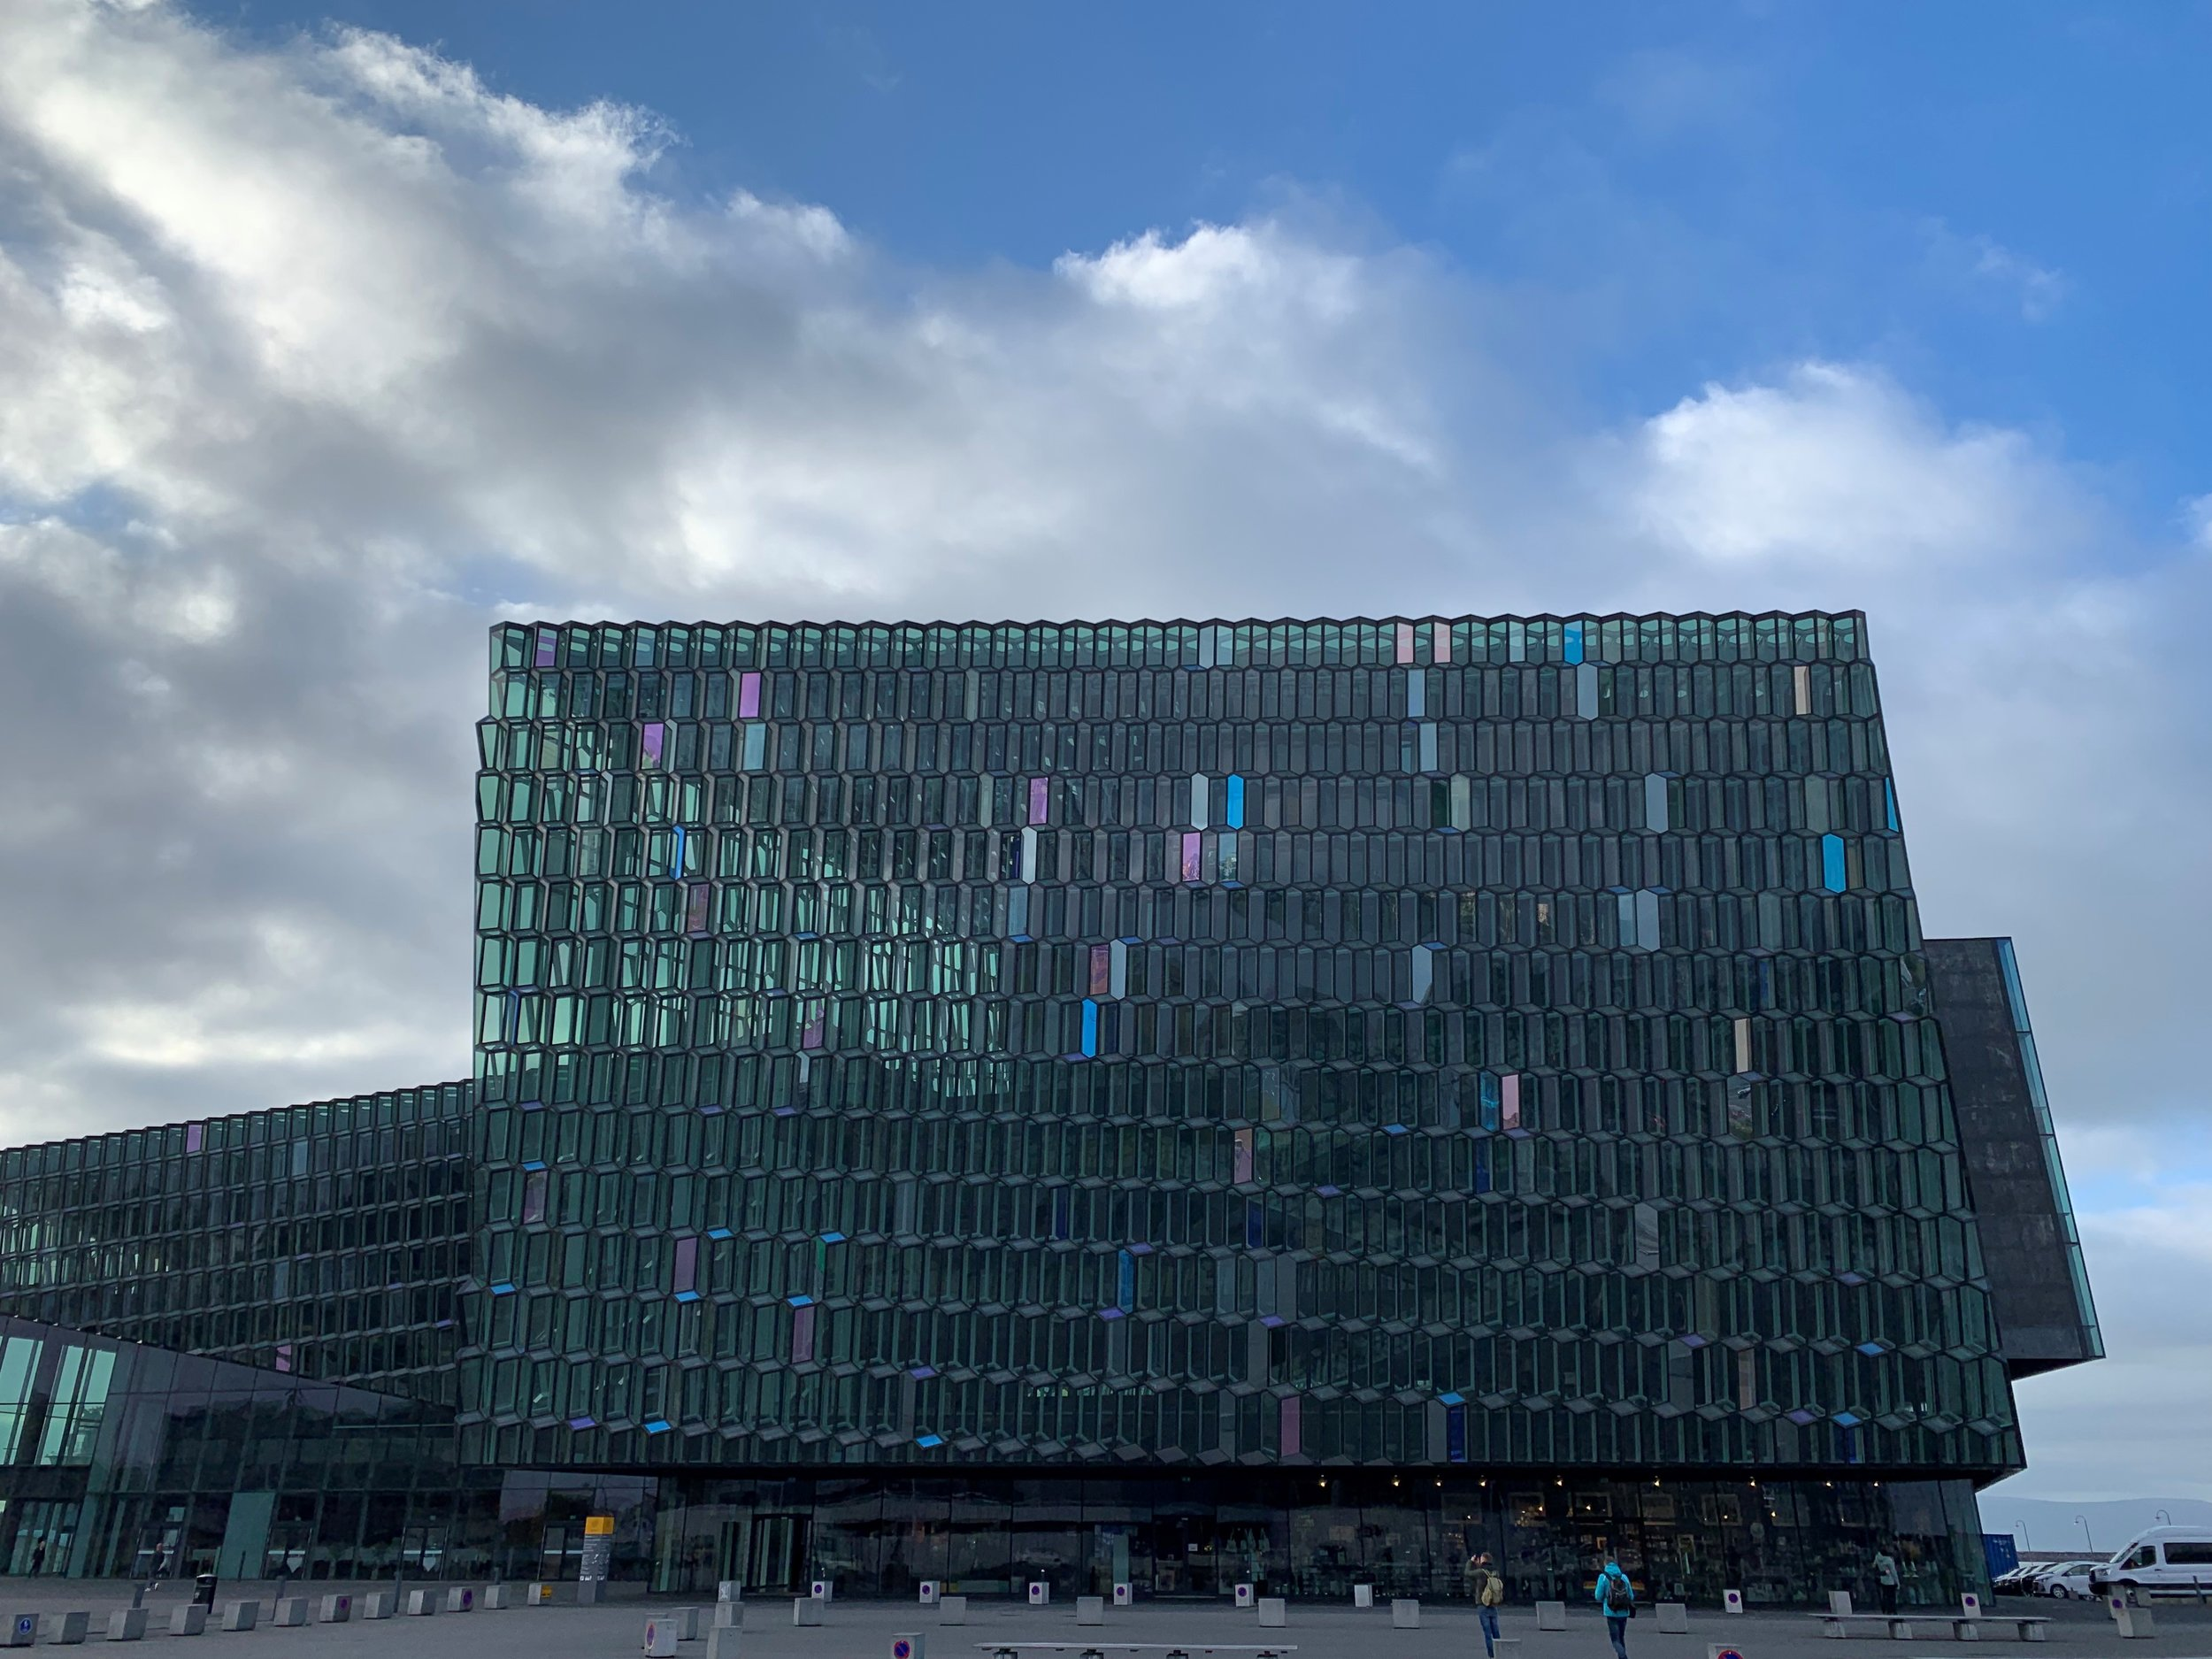 Maybe Bjork will be playing at the Harpa tonight?